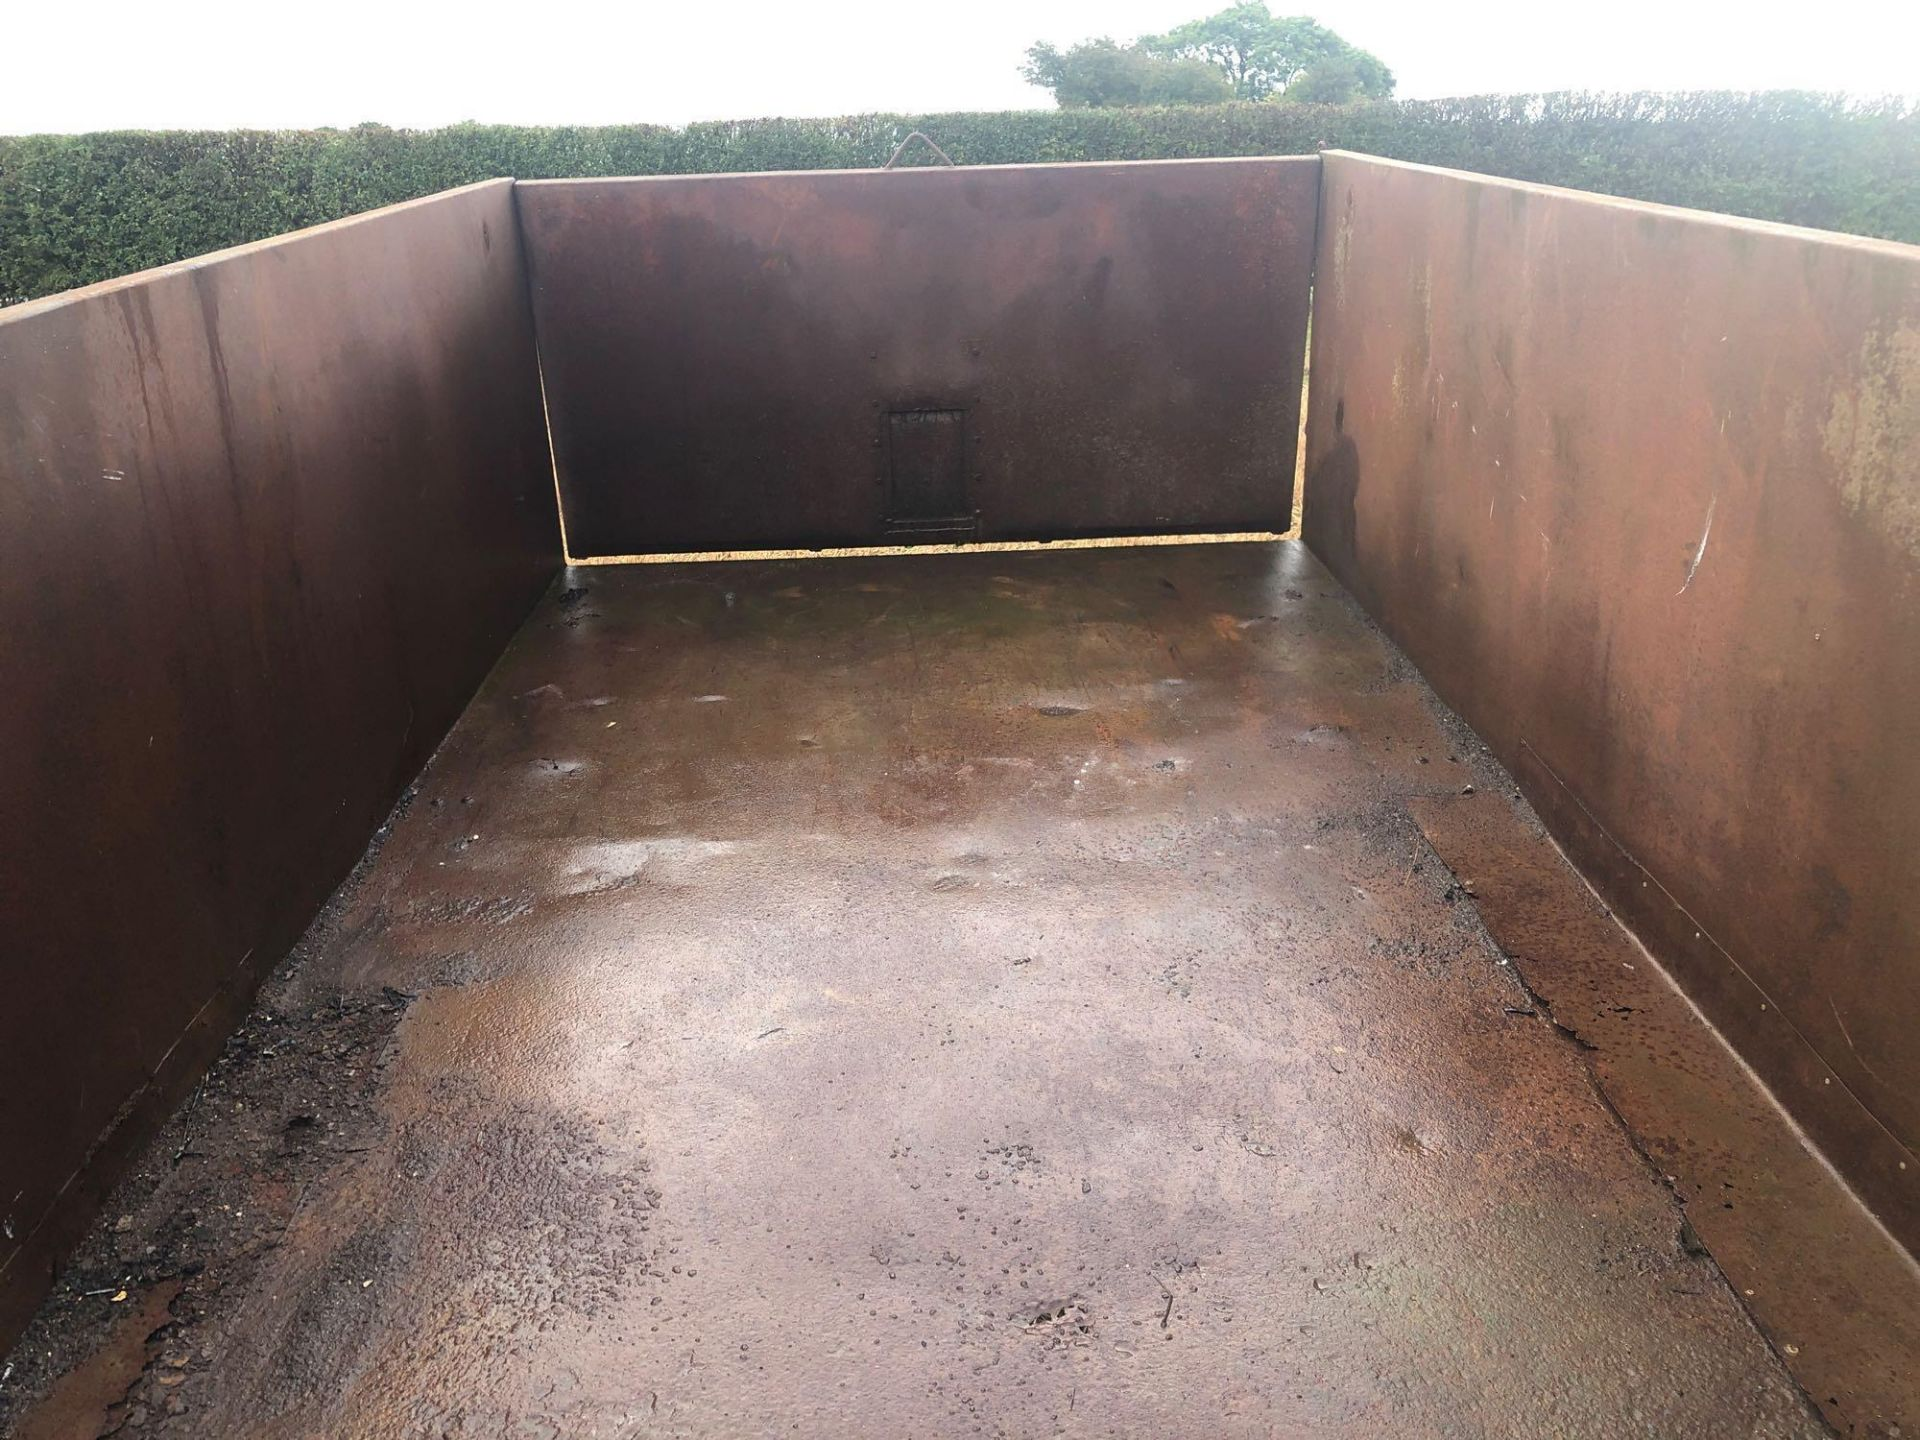 1978 6t homemade single axle trailer. C/w silage sides and back door. - Image 3 of 8